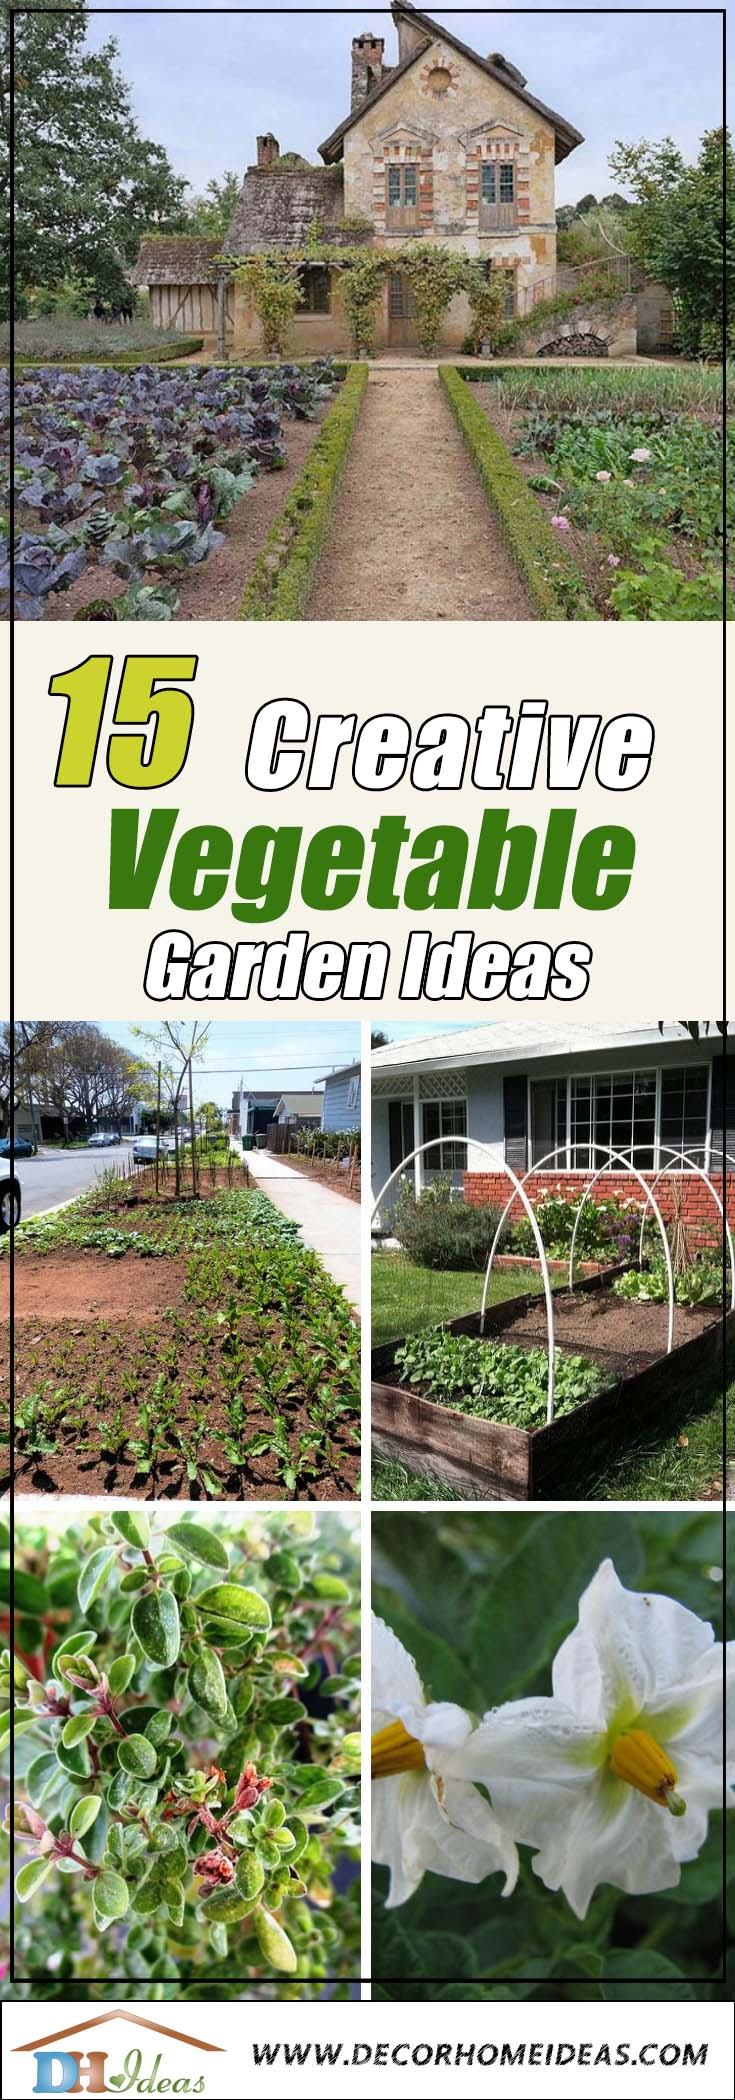 15 Vegetable Garden Ideas Front Yard Feast In Disguise | Grown your own front yard vegetable garden with these tips #gardens #gardening #gardenideas #vegetables #gardeningtips #decorhomeideas